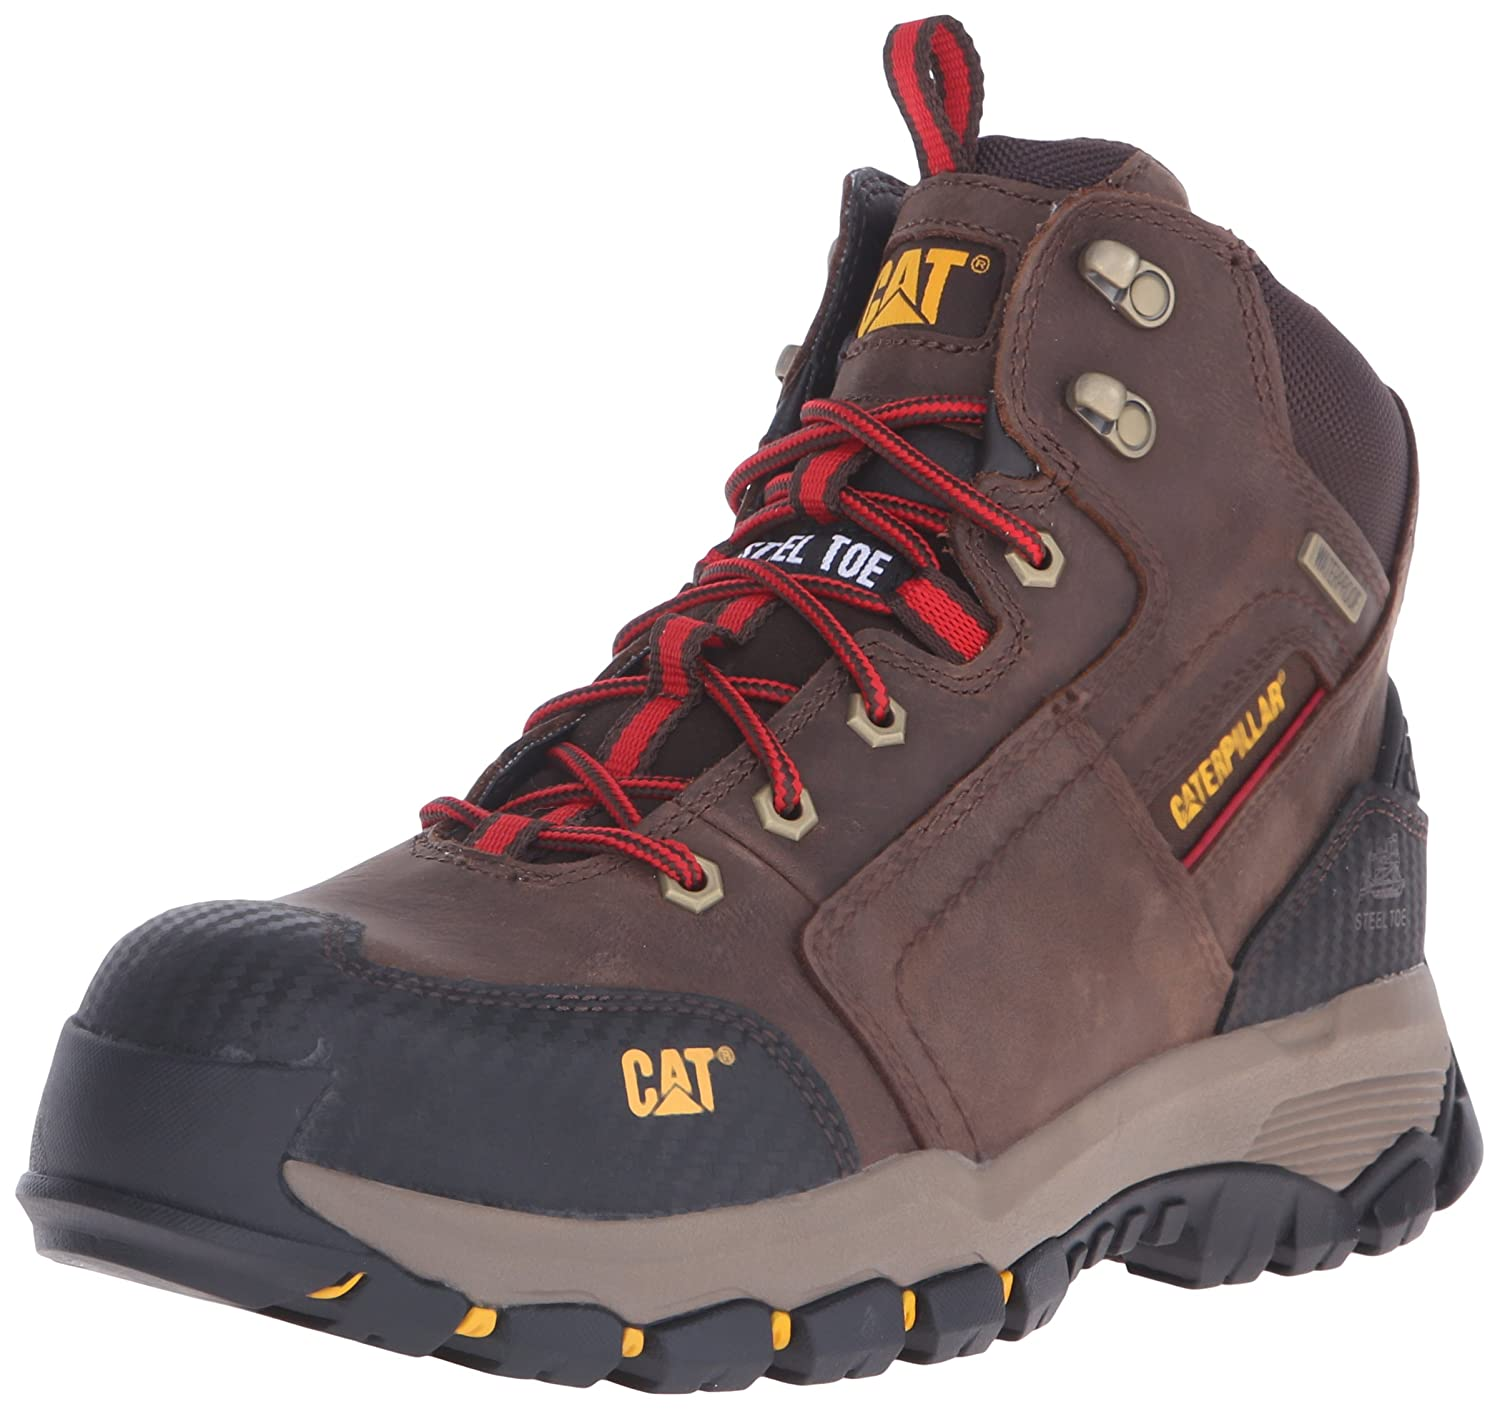 Caterpillar Men 's Navigator Mid防水作業6インチwaterpoofeel Toe クレイ 12 D(M) US 12 D(M) USクレイ B014LWP5G6